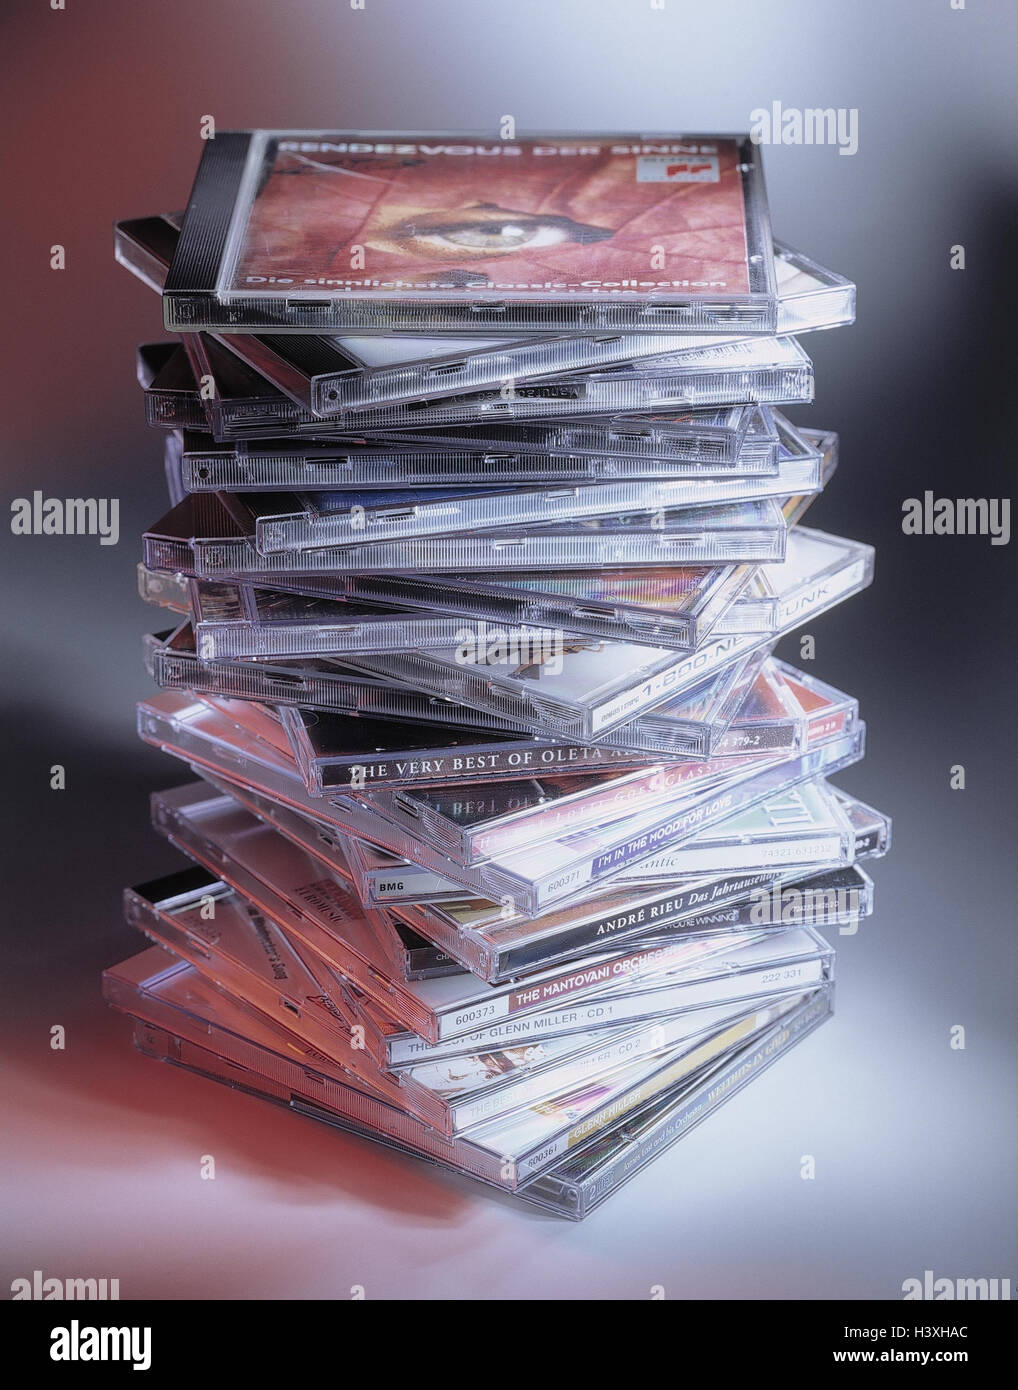 CD's, stacked, CD, compact disc, music, music CD's, product photography, data carrier, Still life, CD cover, batch, Stock Photo